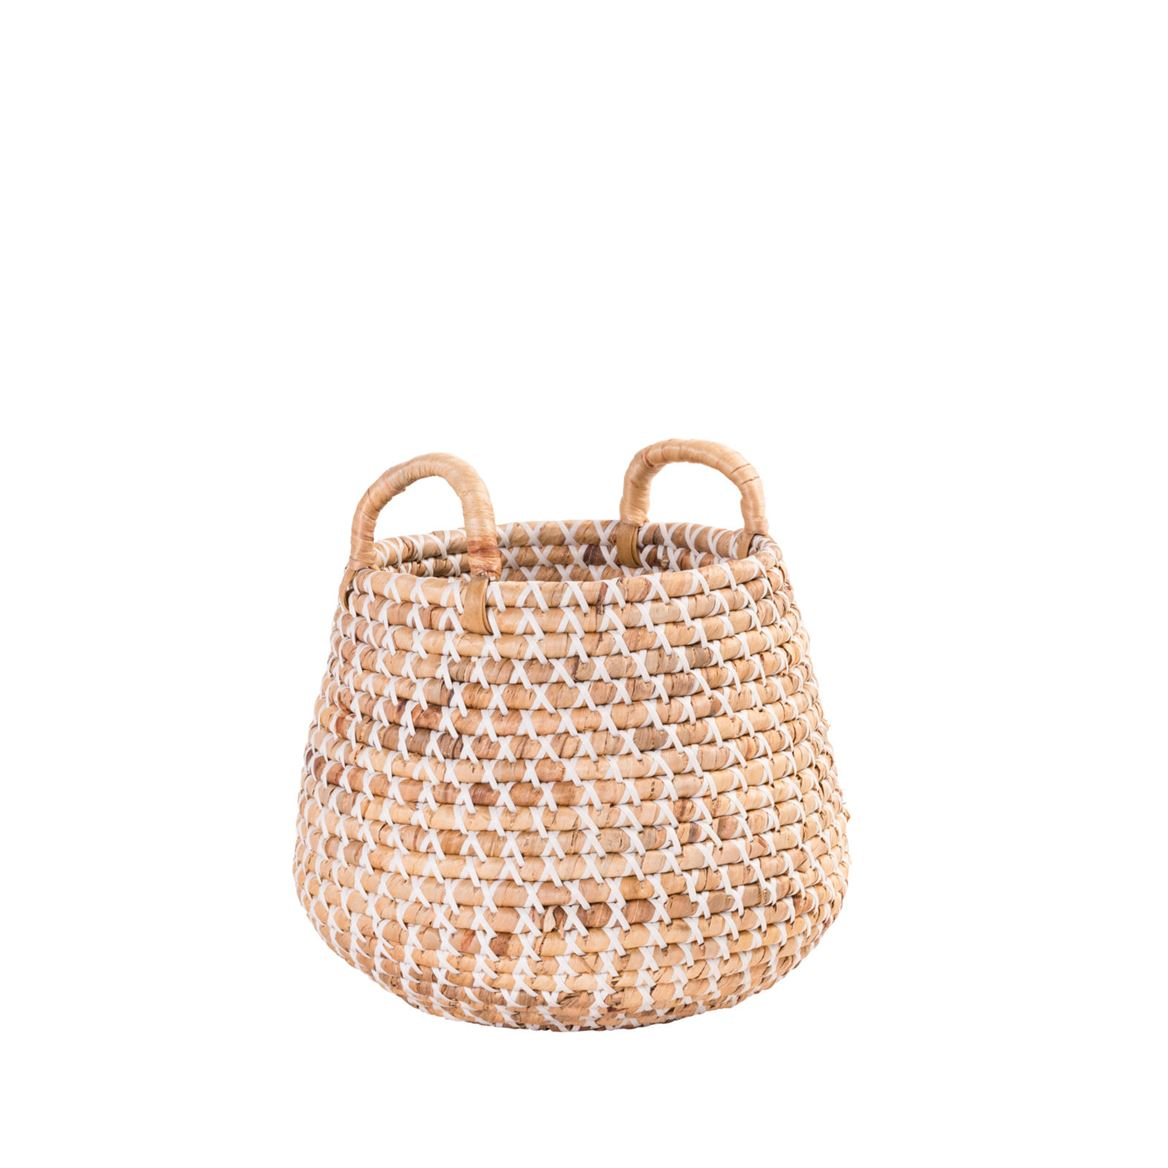 DOLLY Panier naturel H 30 cm; Ø 35 cm_dolly-panier-naturel-h-30-cm;-ø-35-cm